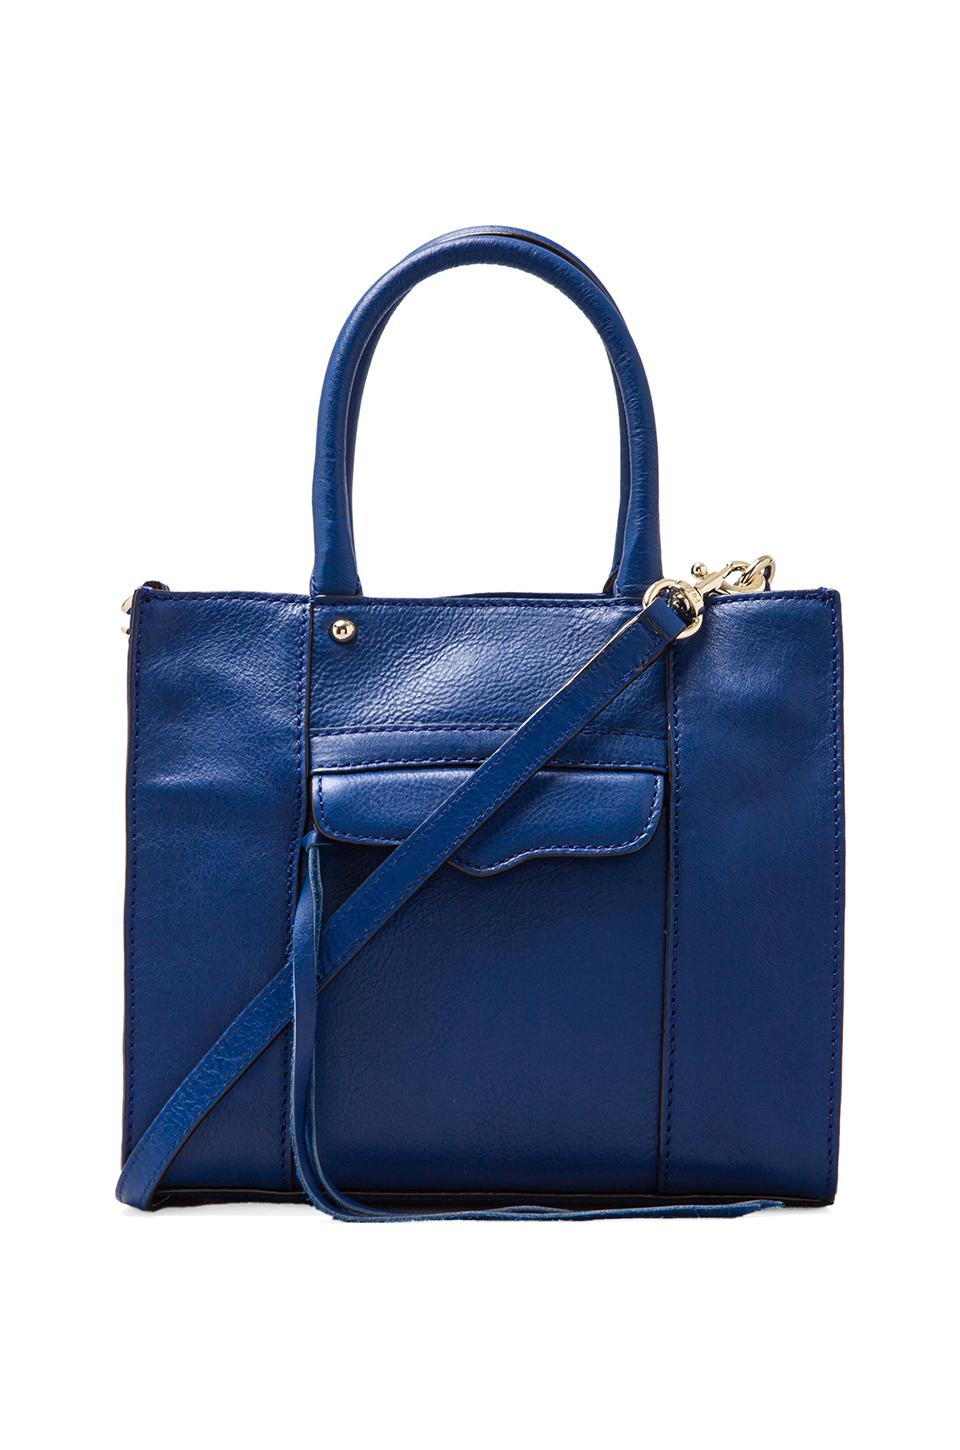 Rebecca Minkoff x REVOLVE Mab Tote Mini in Electric Blue